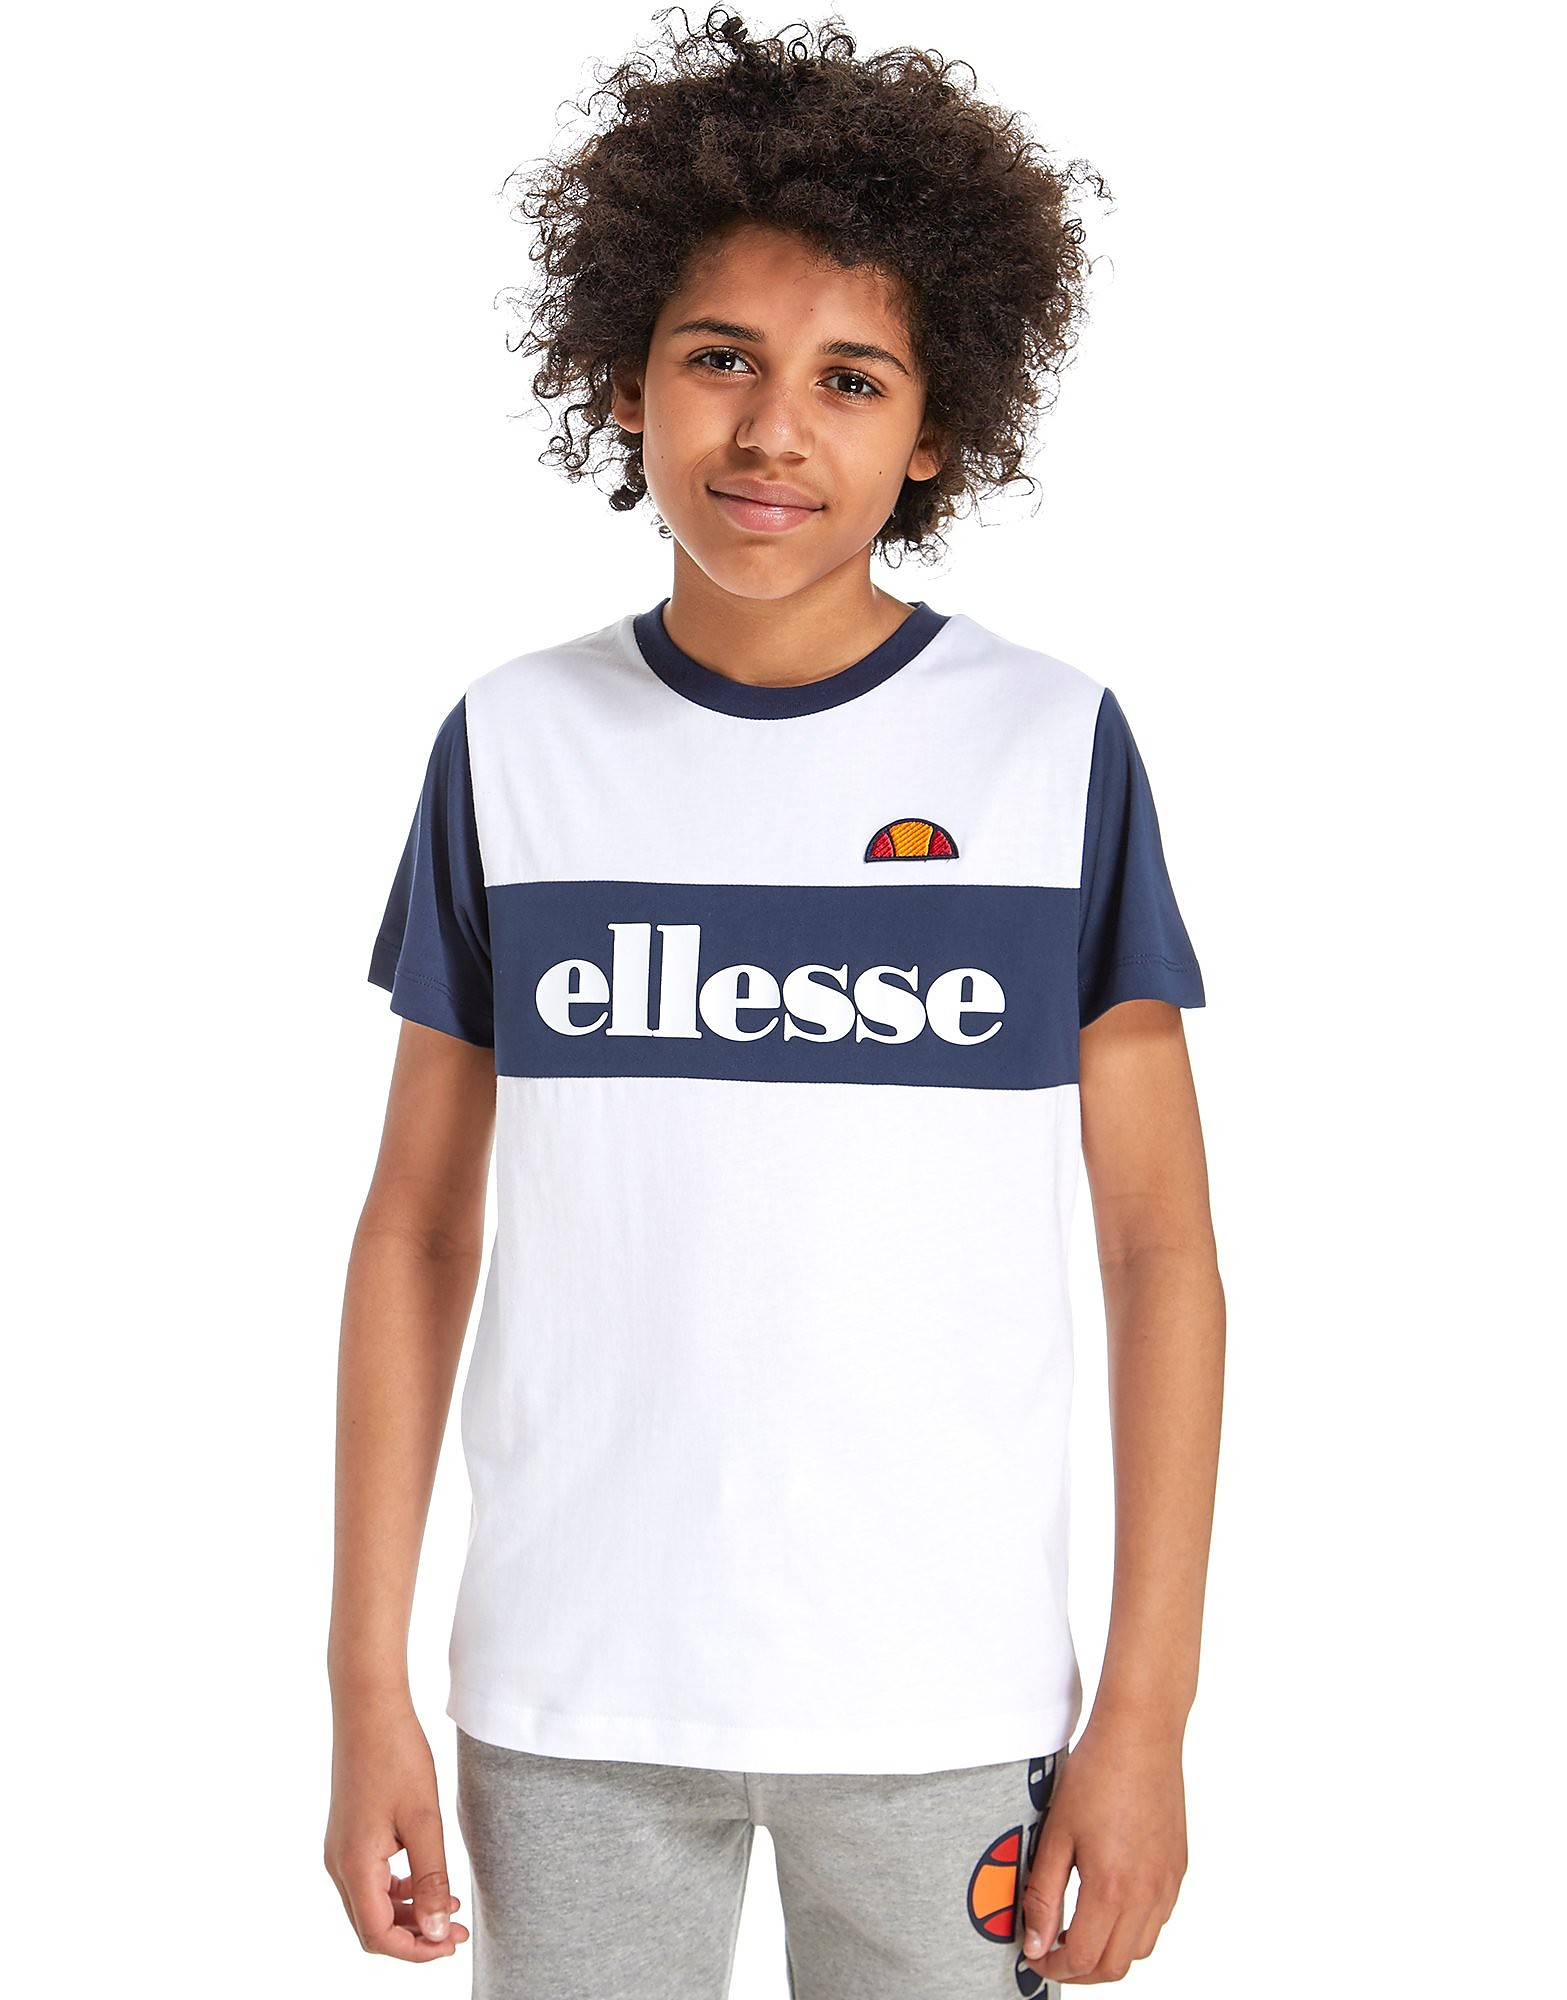 Ellesse Mangia T-Shirt Junior